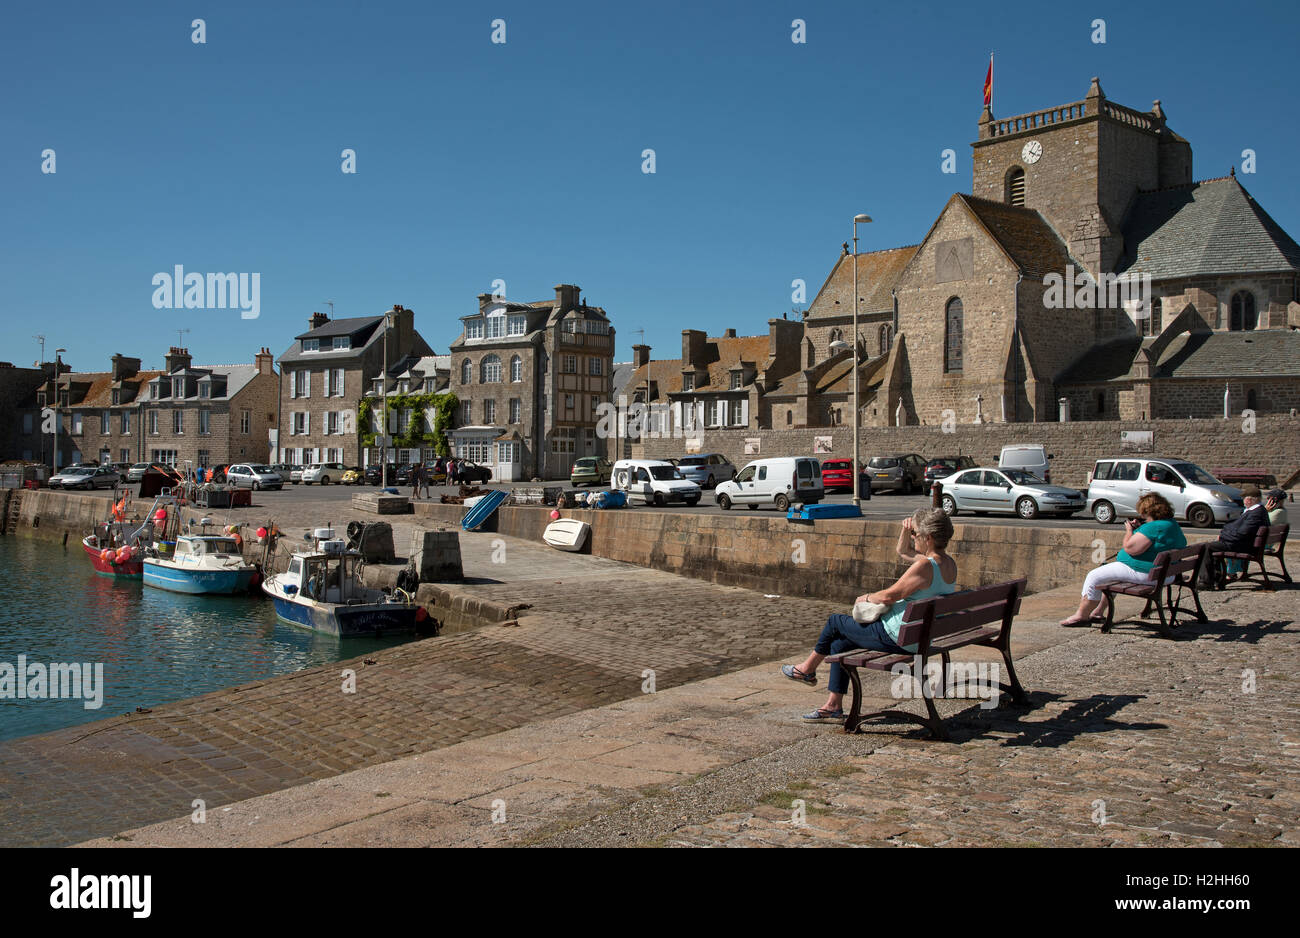 The coastal commune of Barfleur in Normandy northwest France. Stock Photo